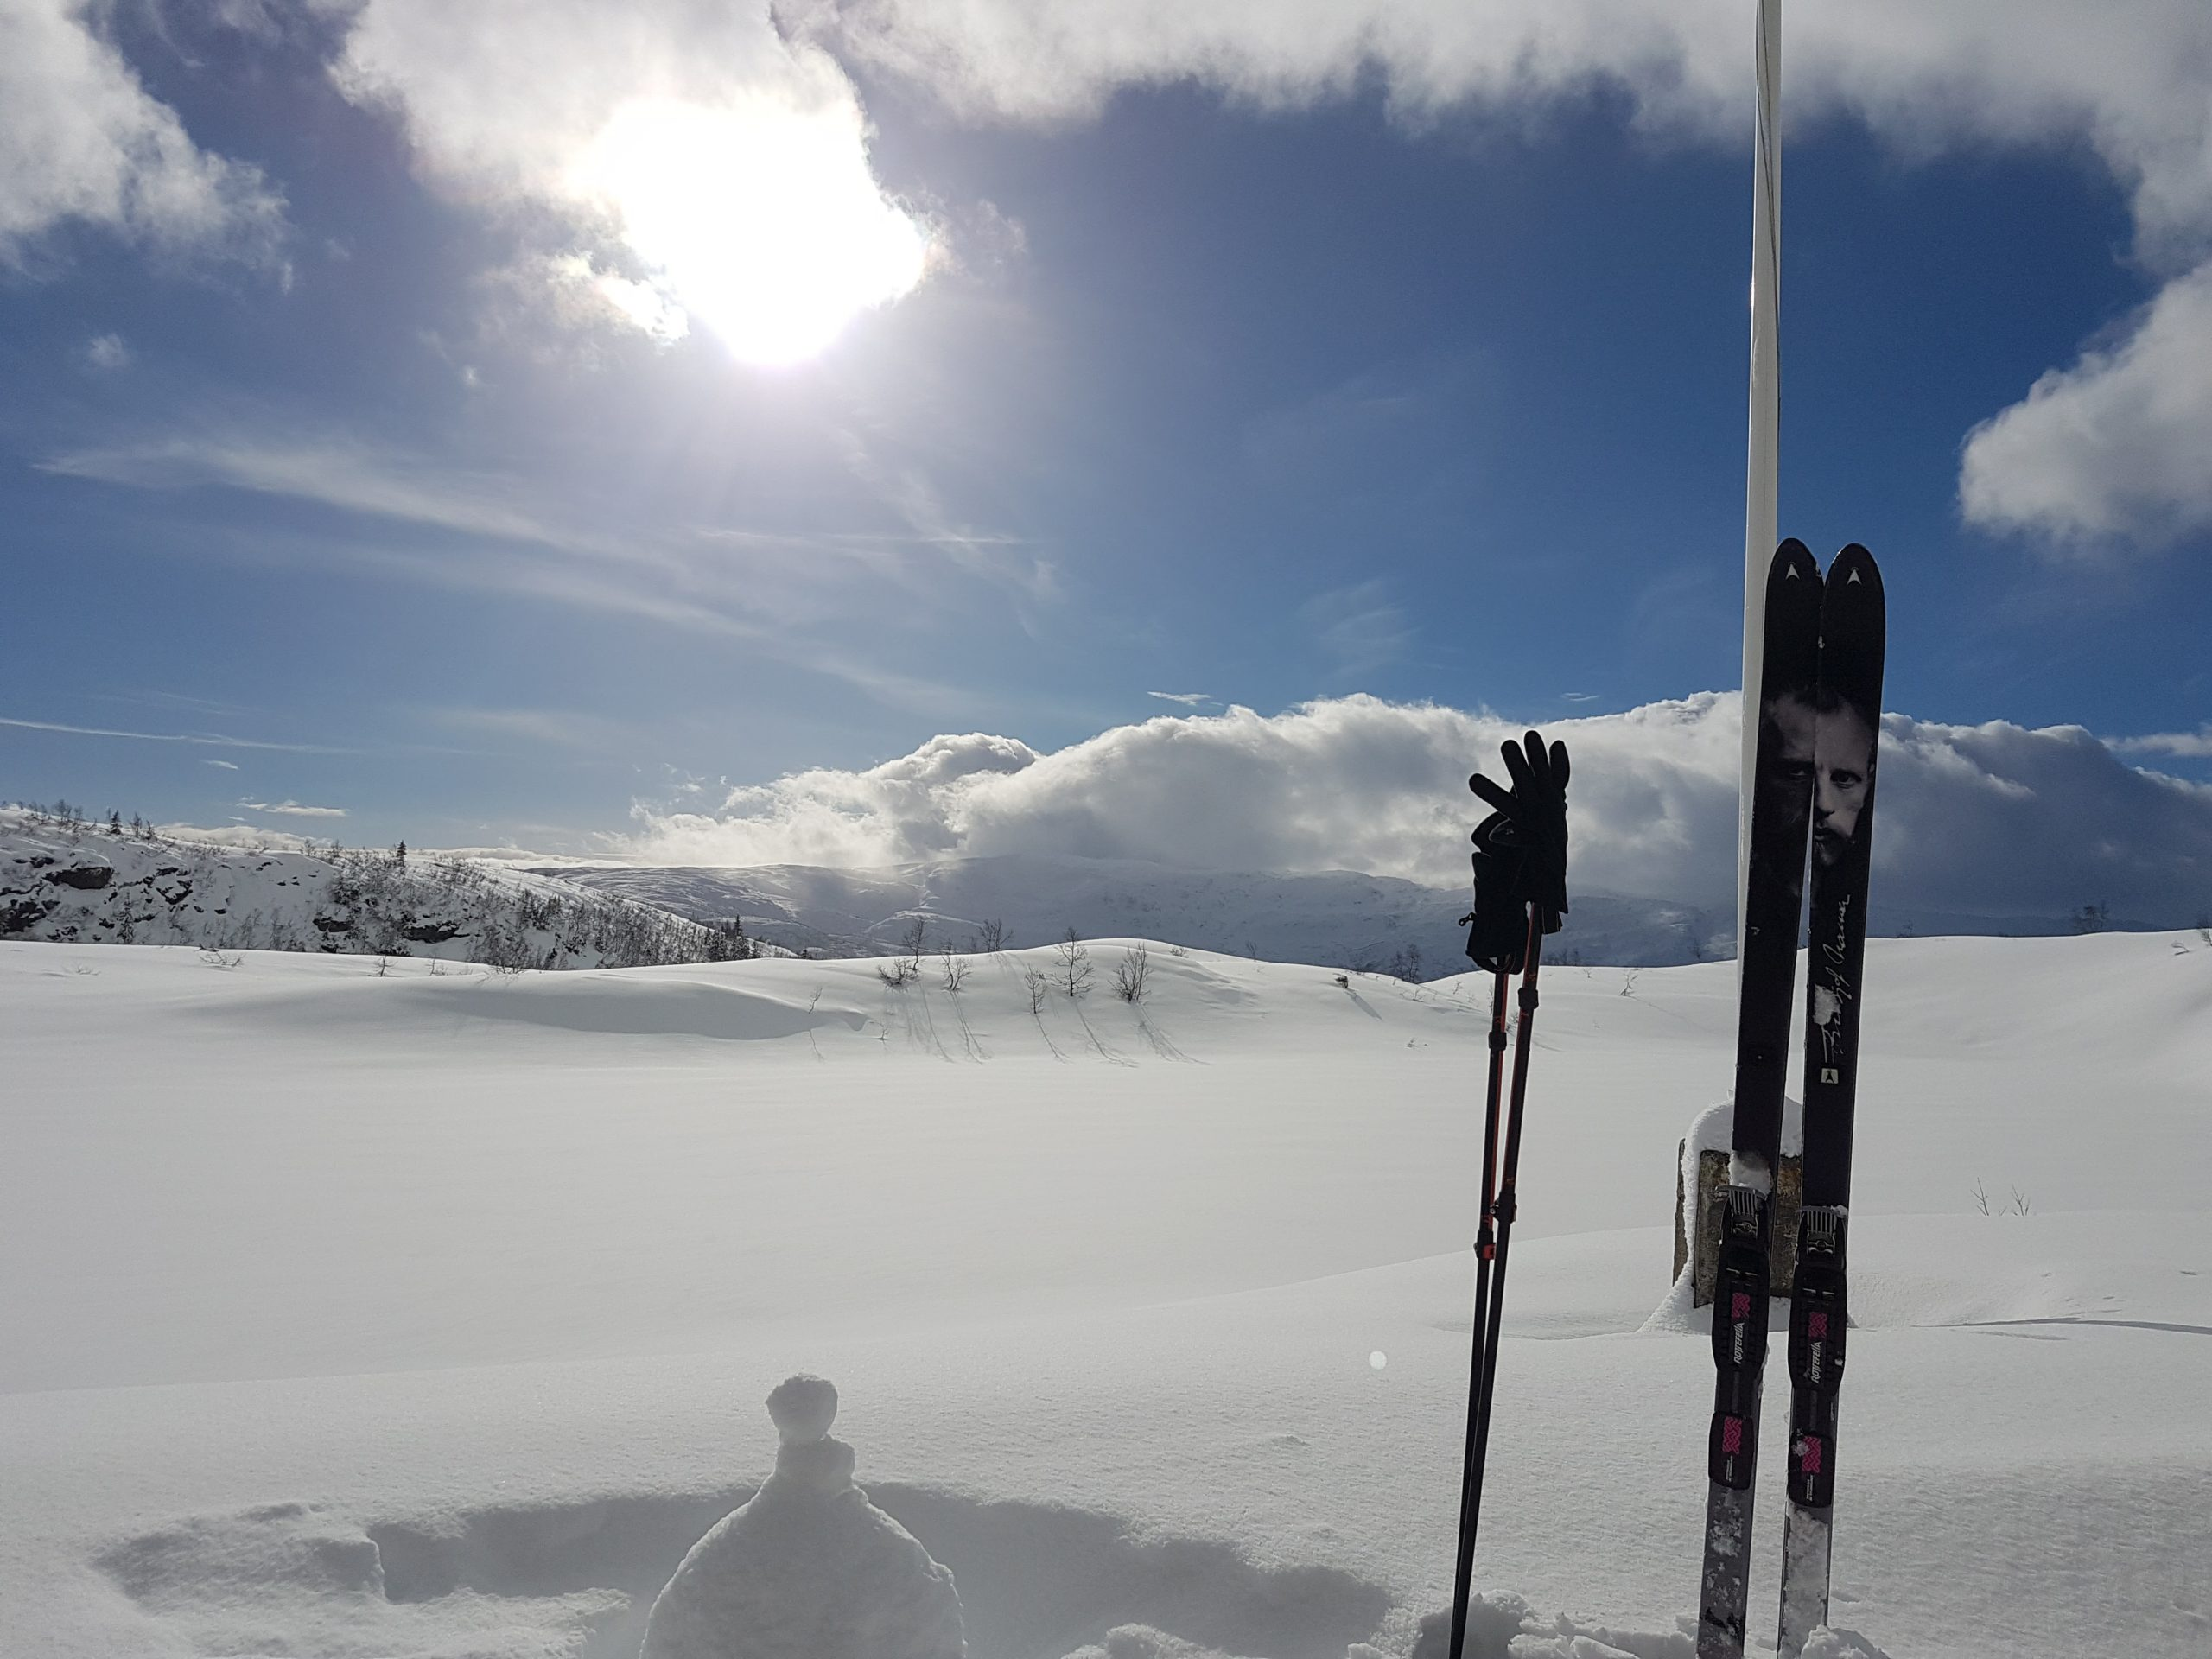 Skiing at Voss